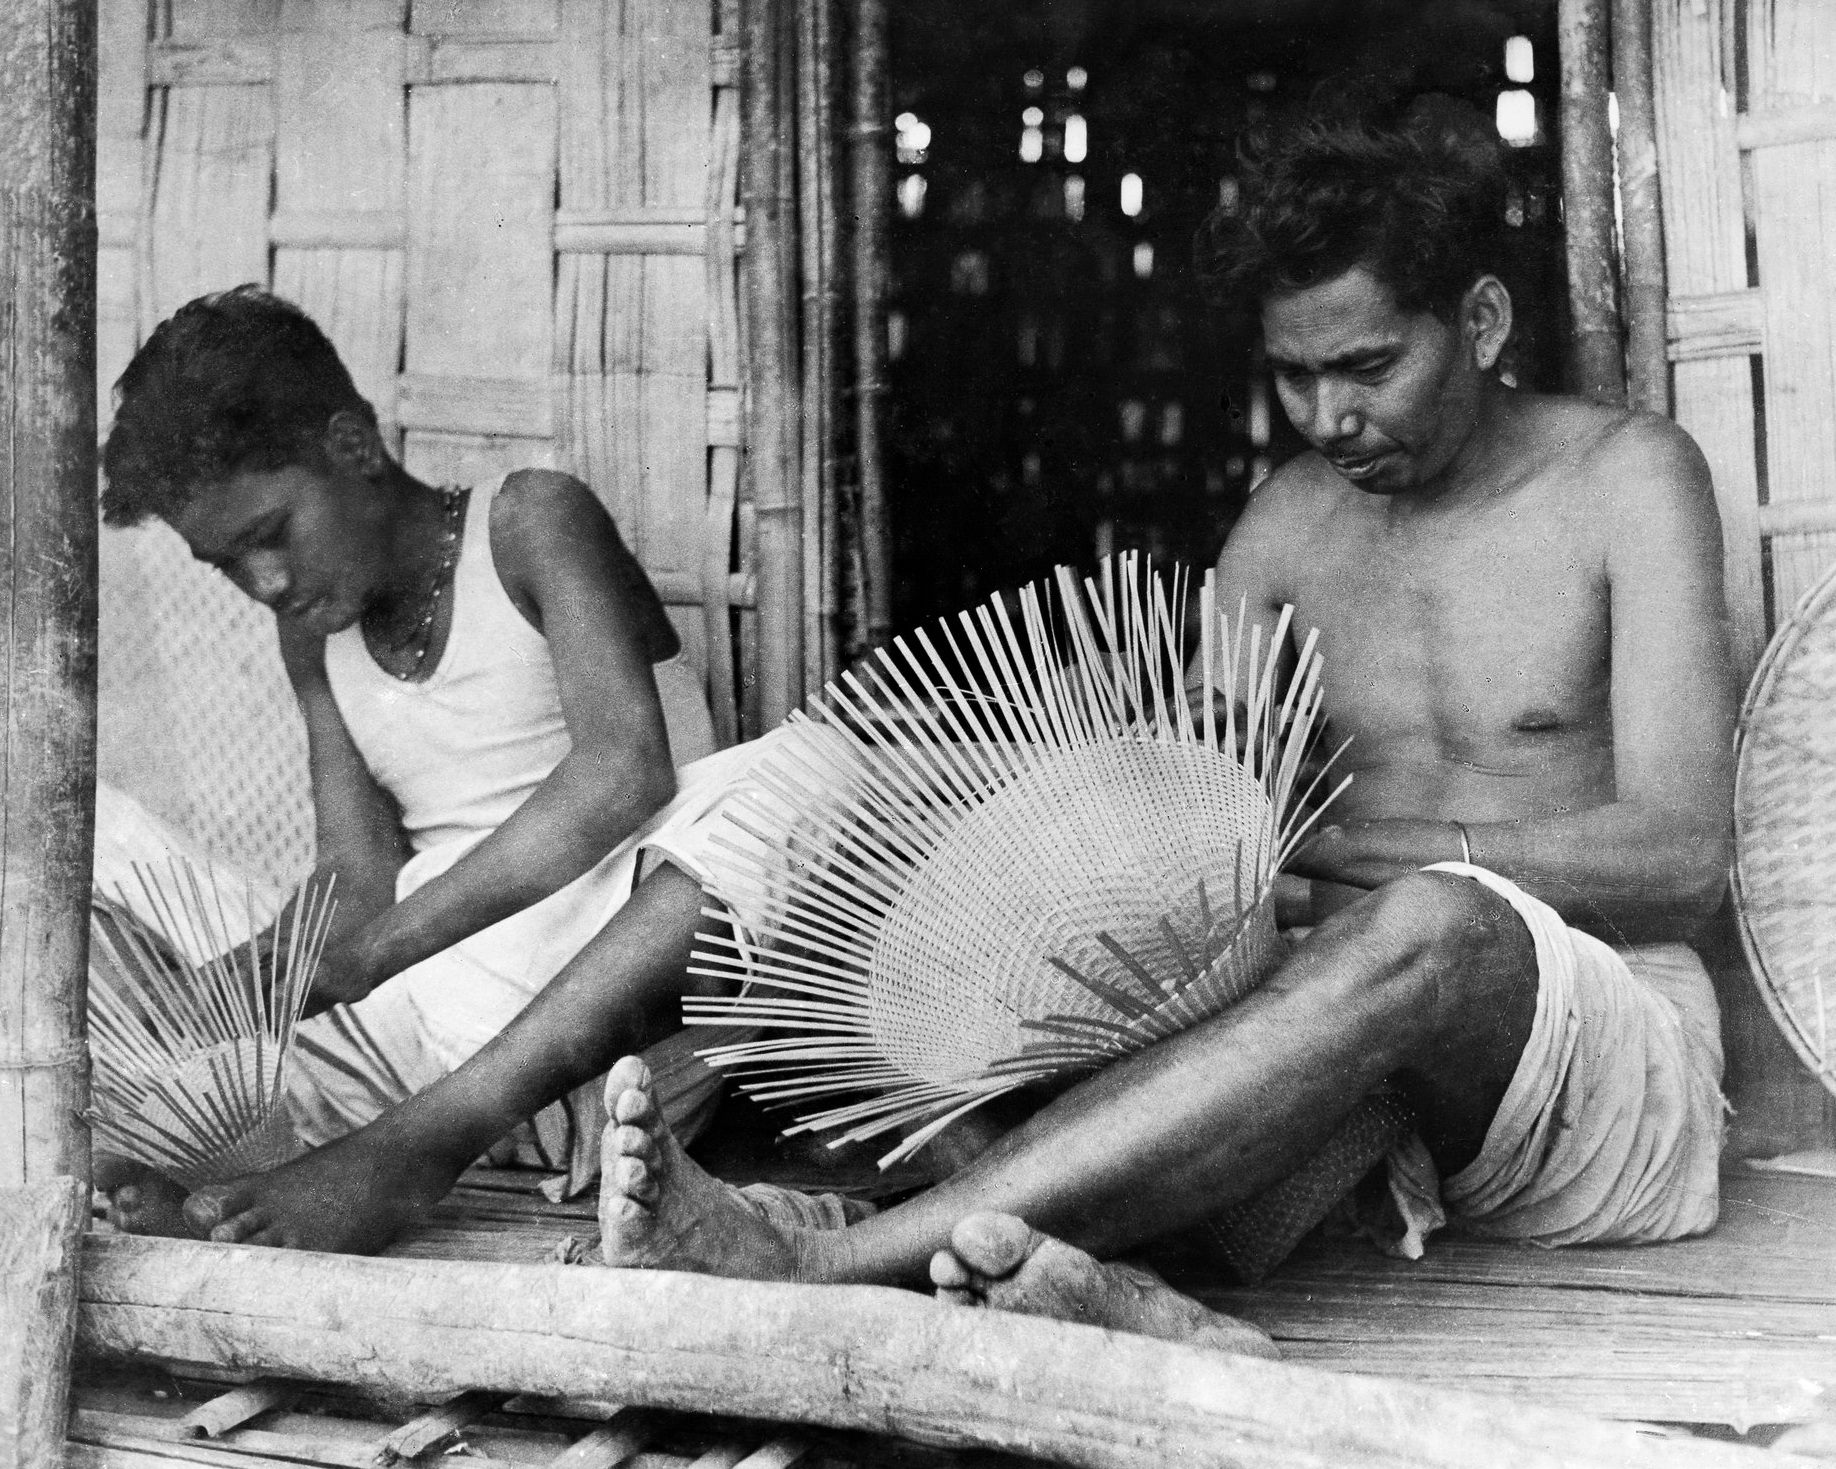 Wa Wo , meaning 'Bamboo Making', refers to basketry craft and is the role of men in indigenous communities in Tripura.  c.1977